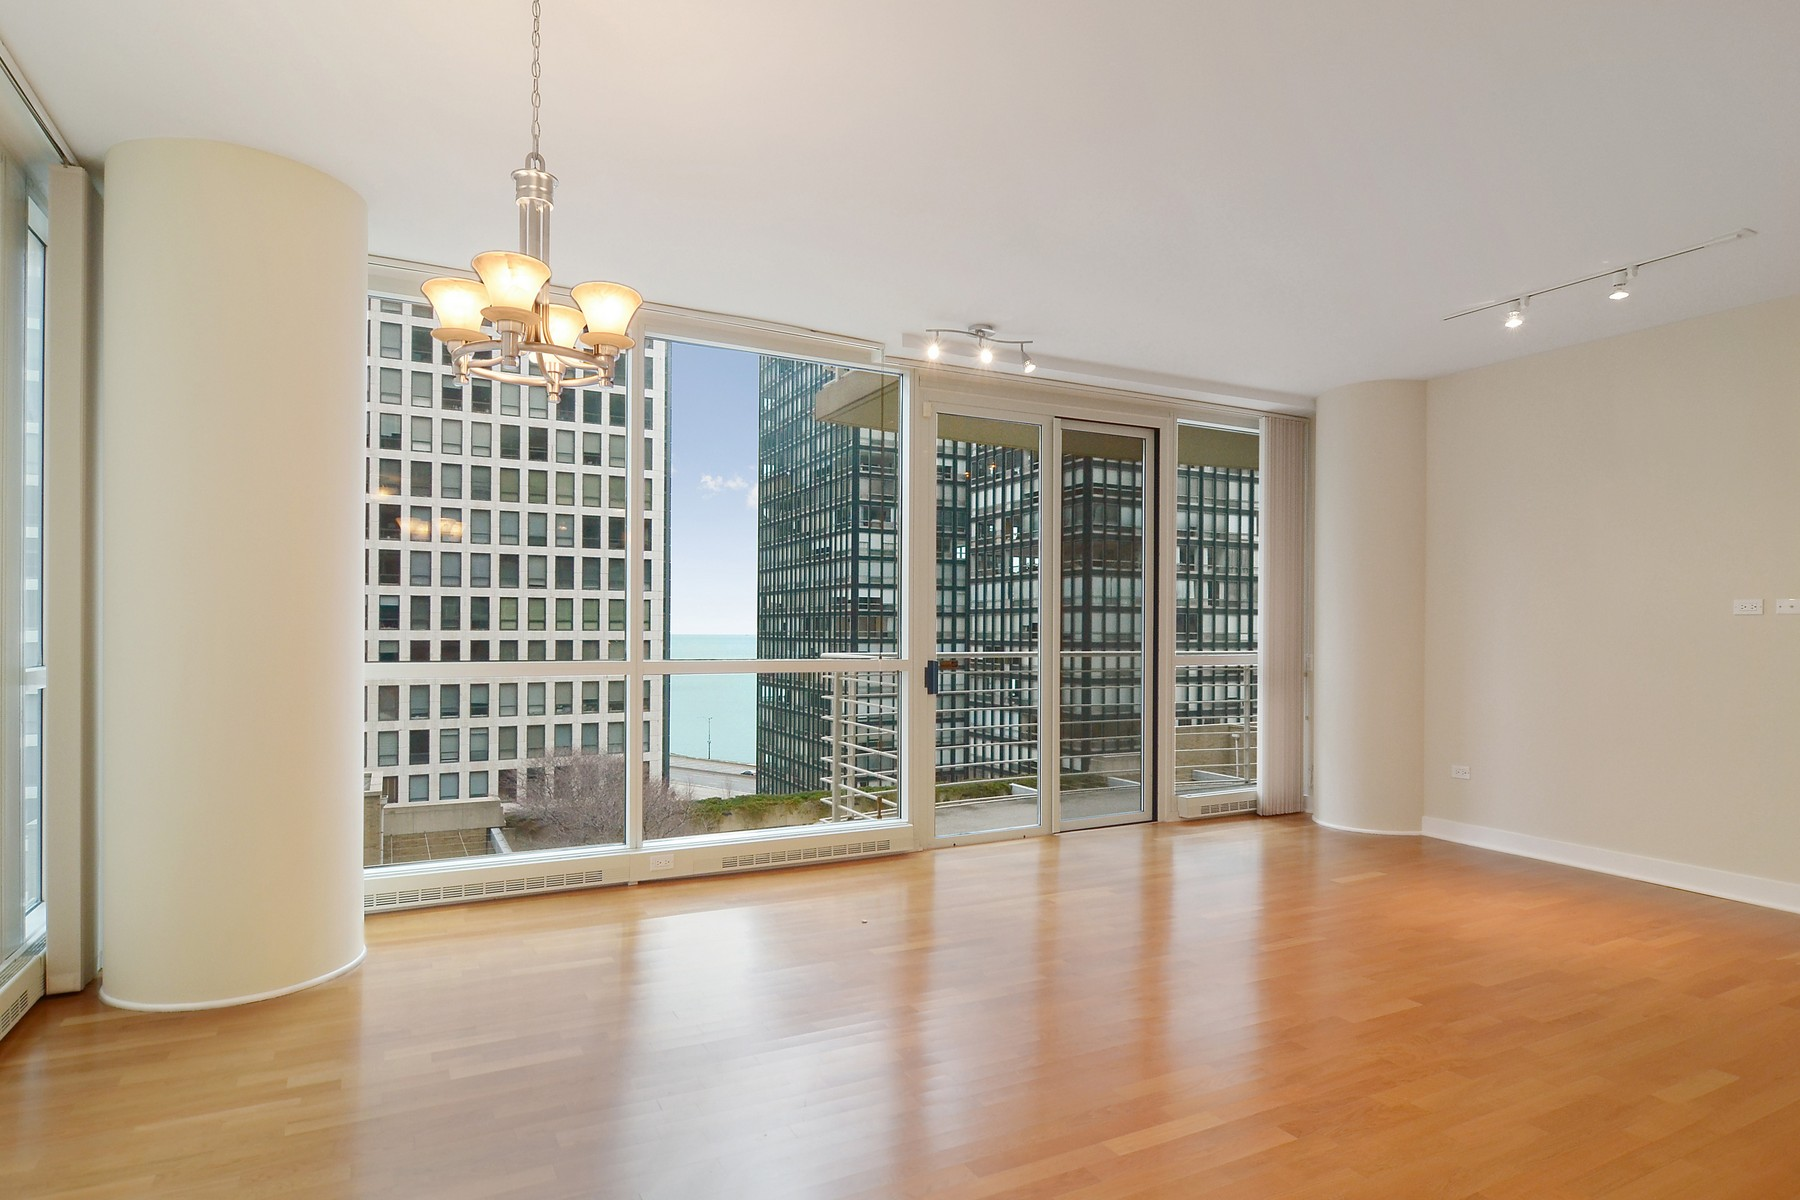 Condominium for Sale at Contemporary Style Condo 250 E Pearson Street Unit 1002 Near North Side, Chicago, Illinois, 60611 United States